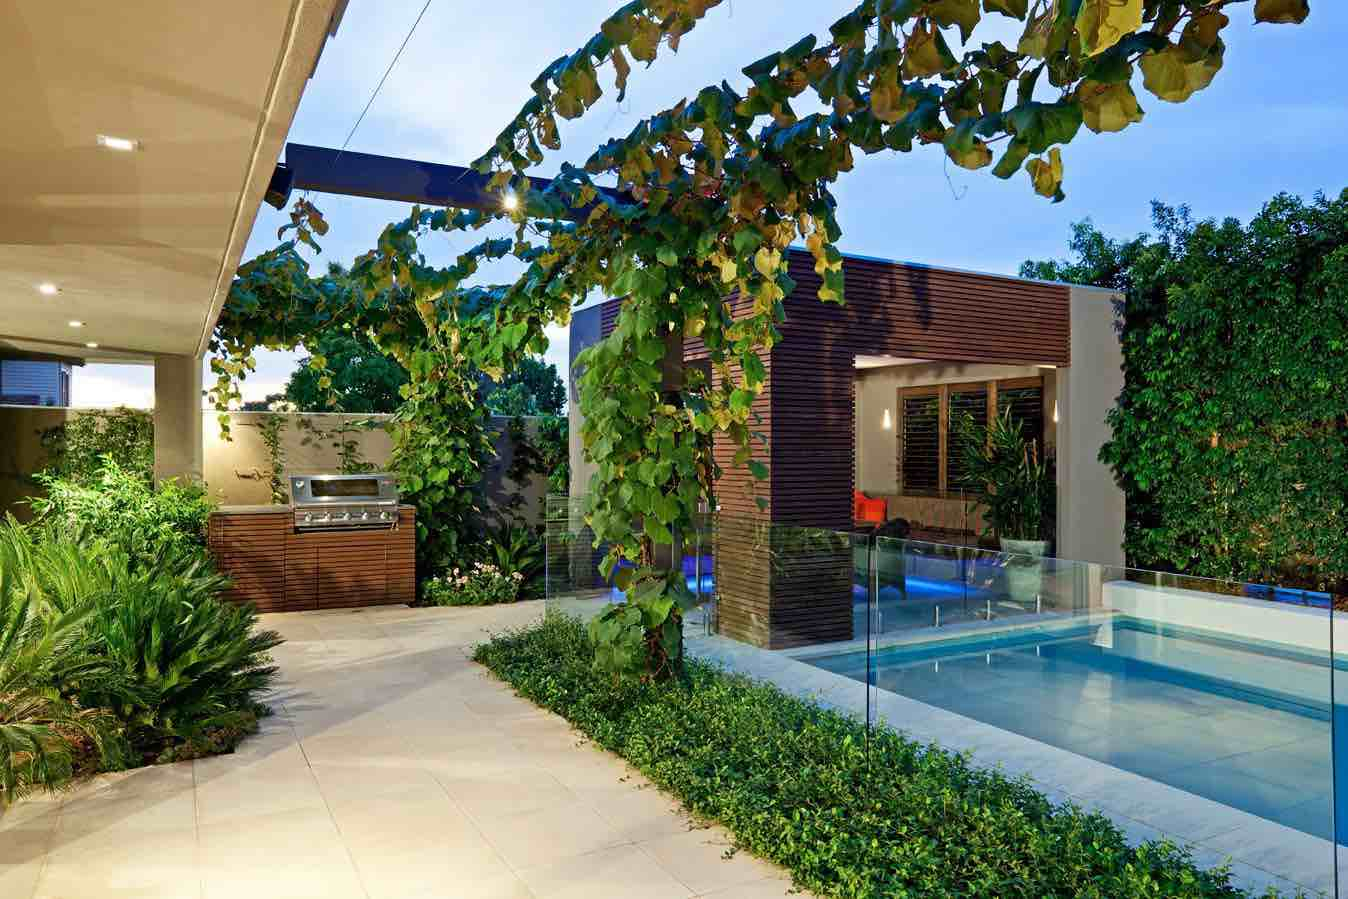 41 backyard design ideas for small yards worthminer for Small patio design ideas